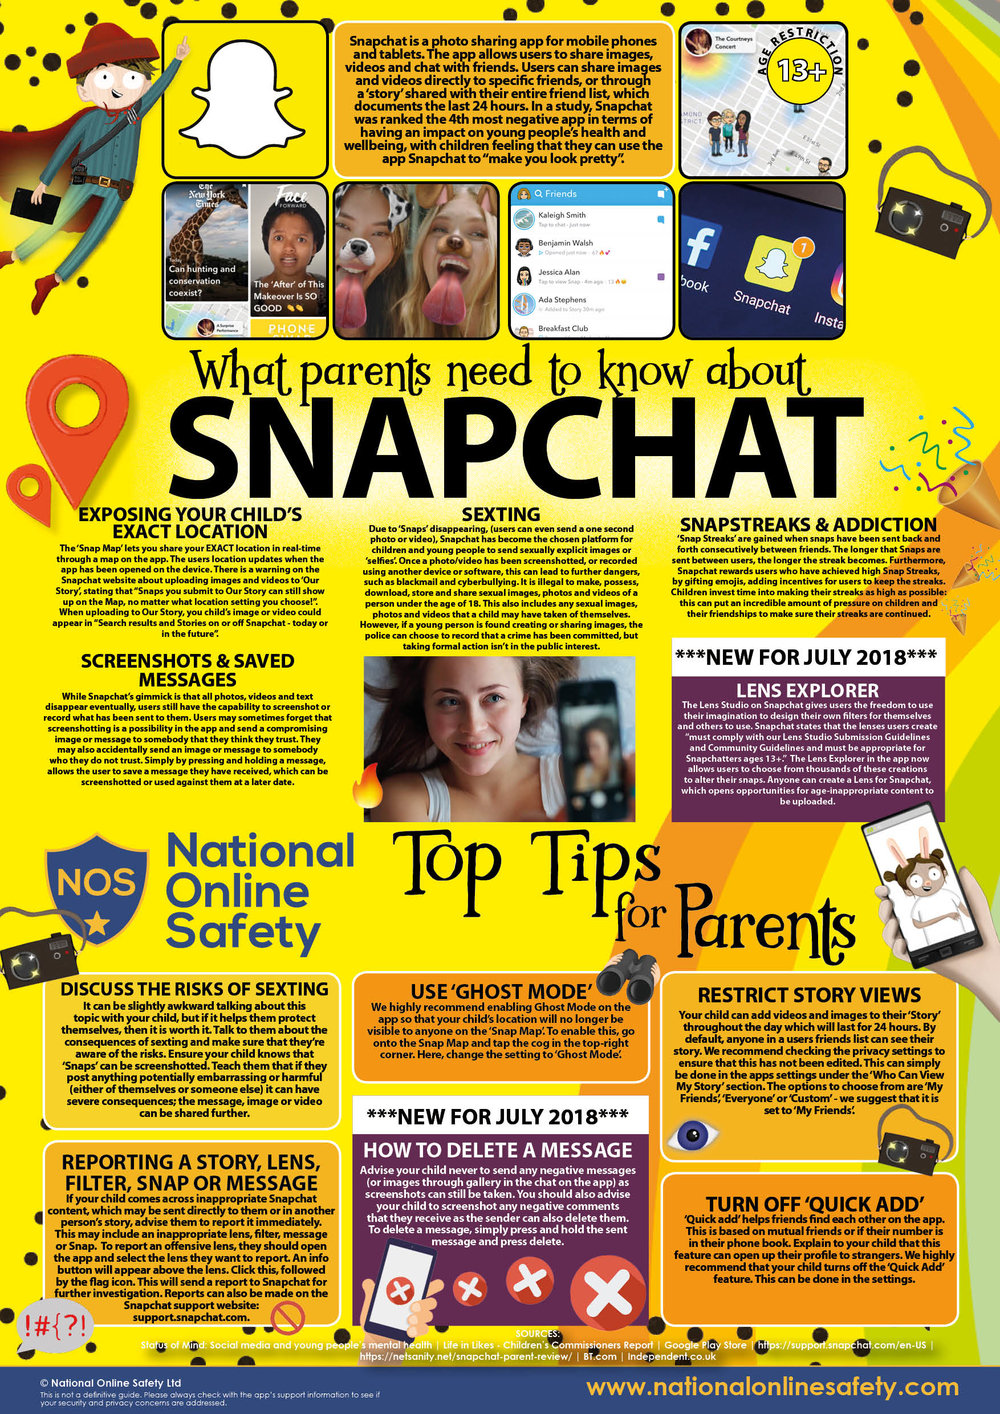 Parents-Snapchat-Guide-National-Online-Safety-July-Update-2018.jpg